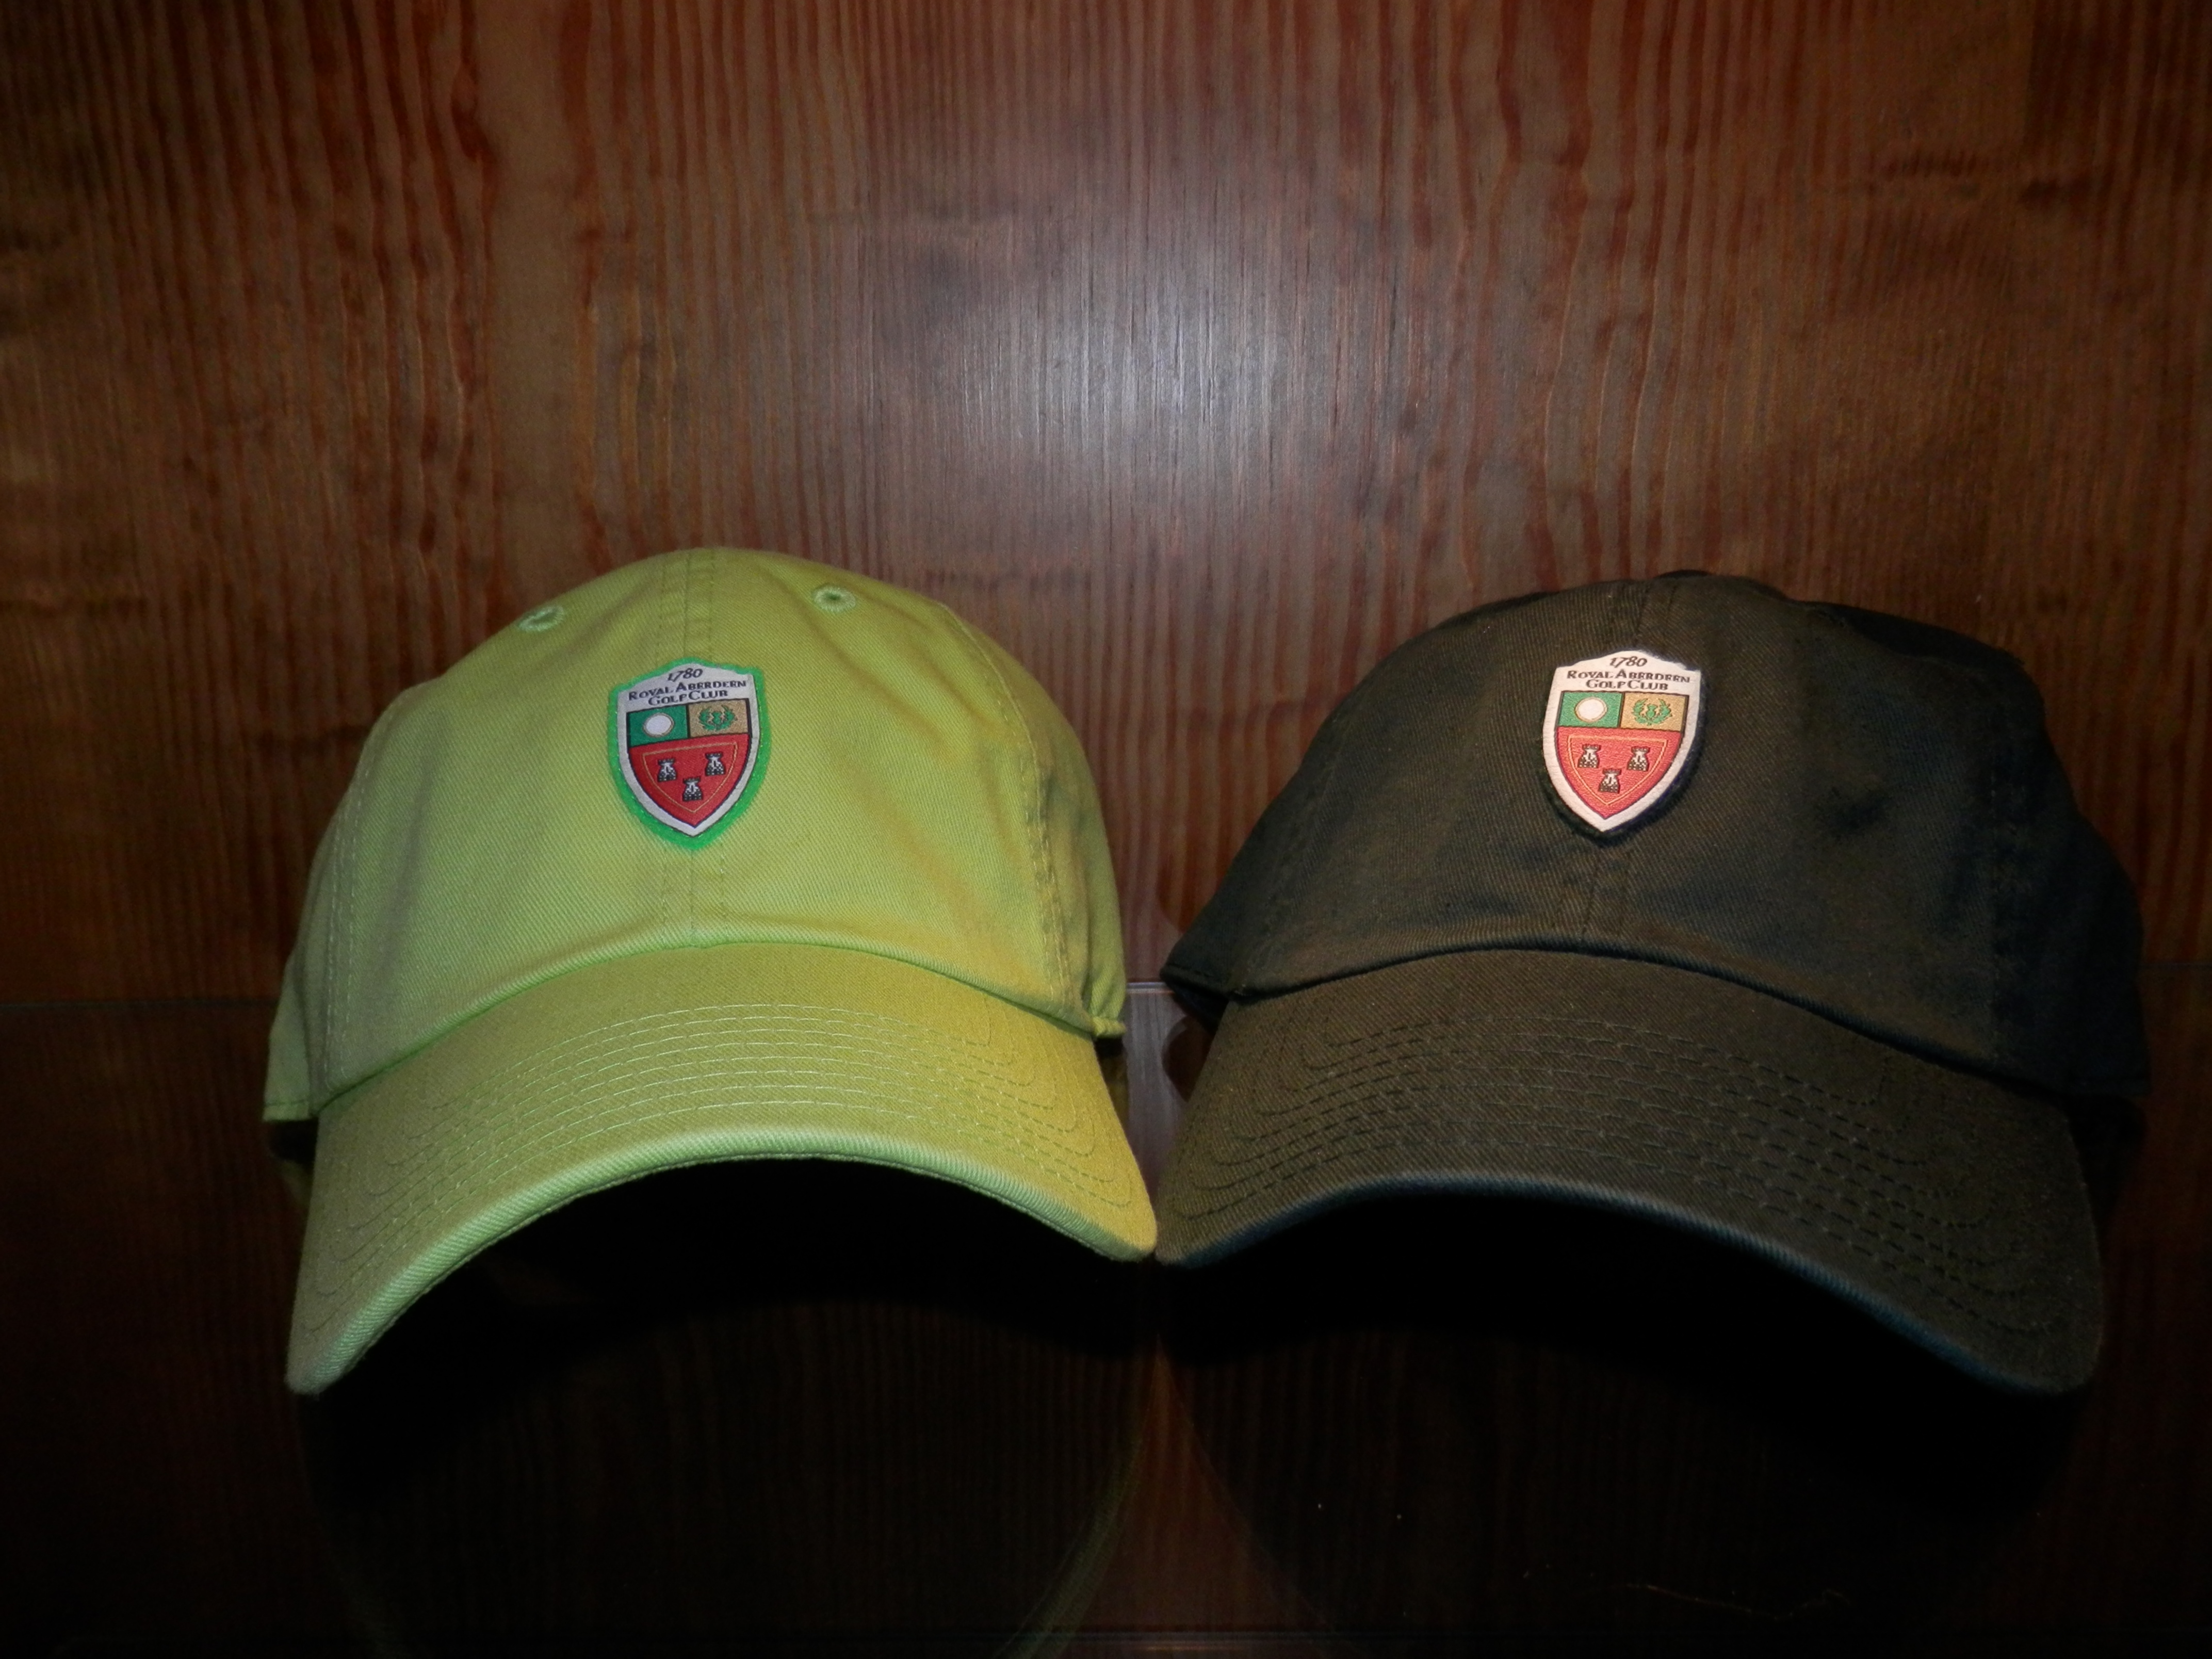 Gents Baseball Cap - HAT CURRENTLY OUT OF STOCK UNTIL APRIL 2017. 1d1091a4cae